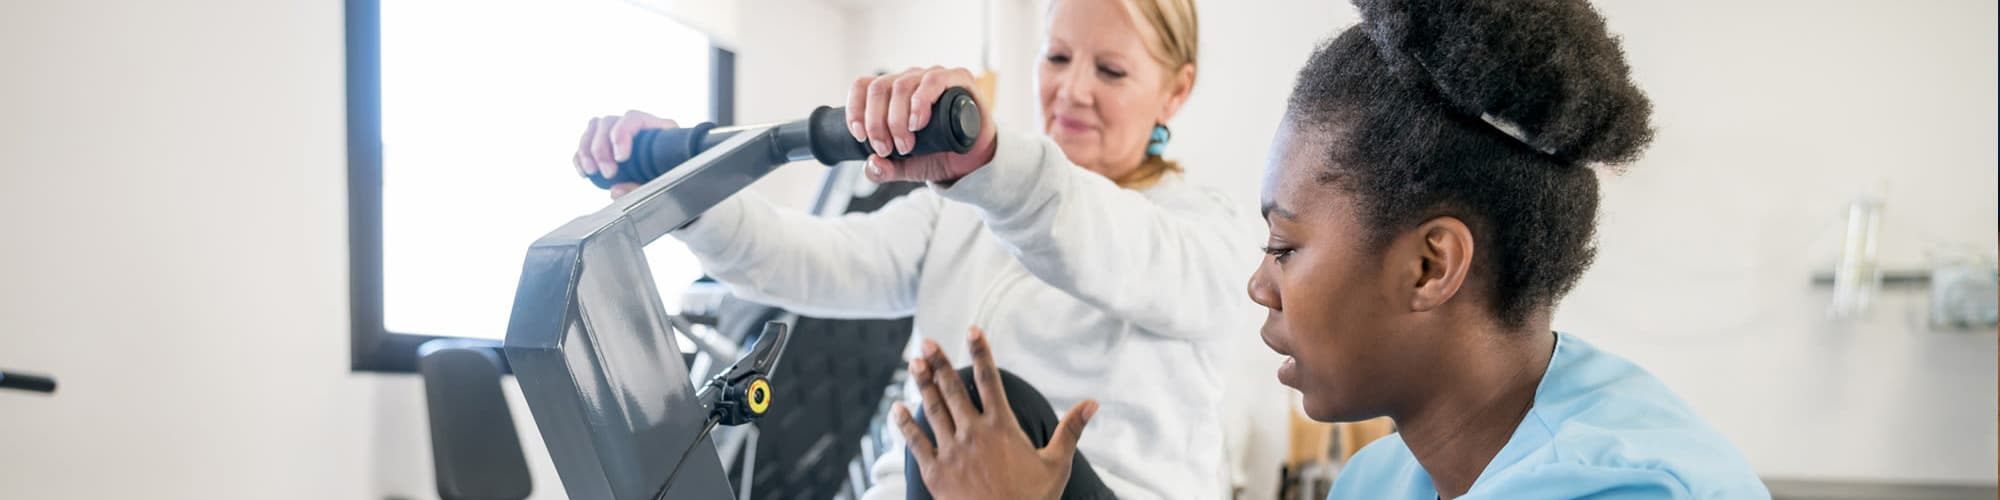 Short term respite at Crystal Terrace of Klamath Falls in Klamath Falls, Oregon